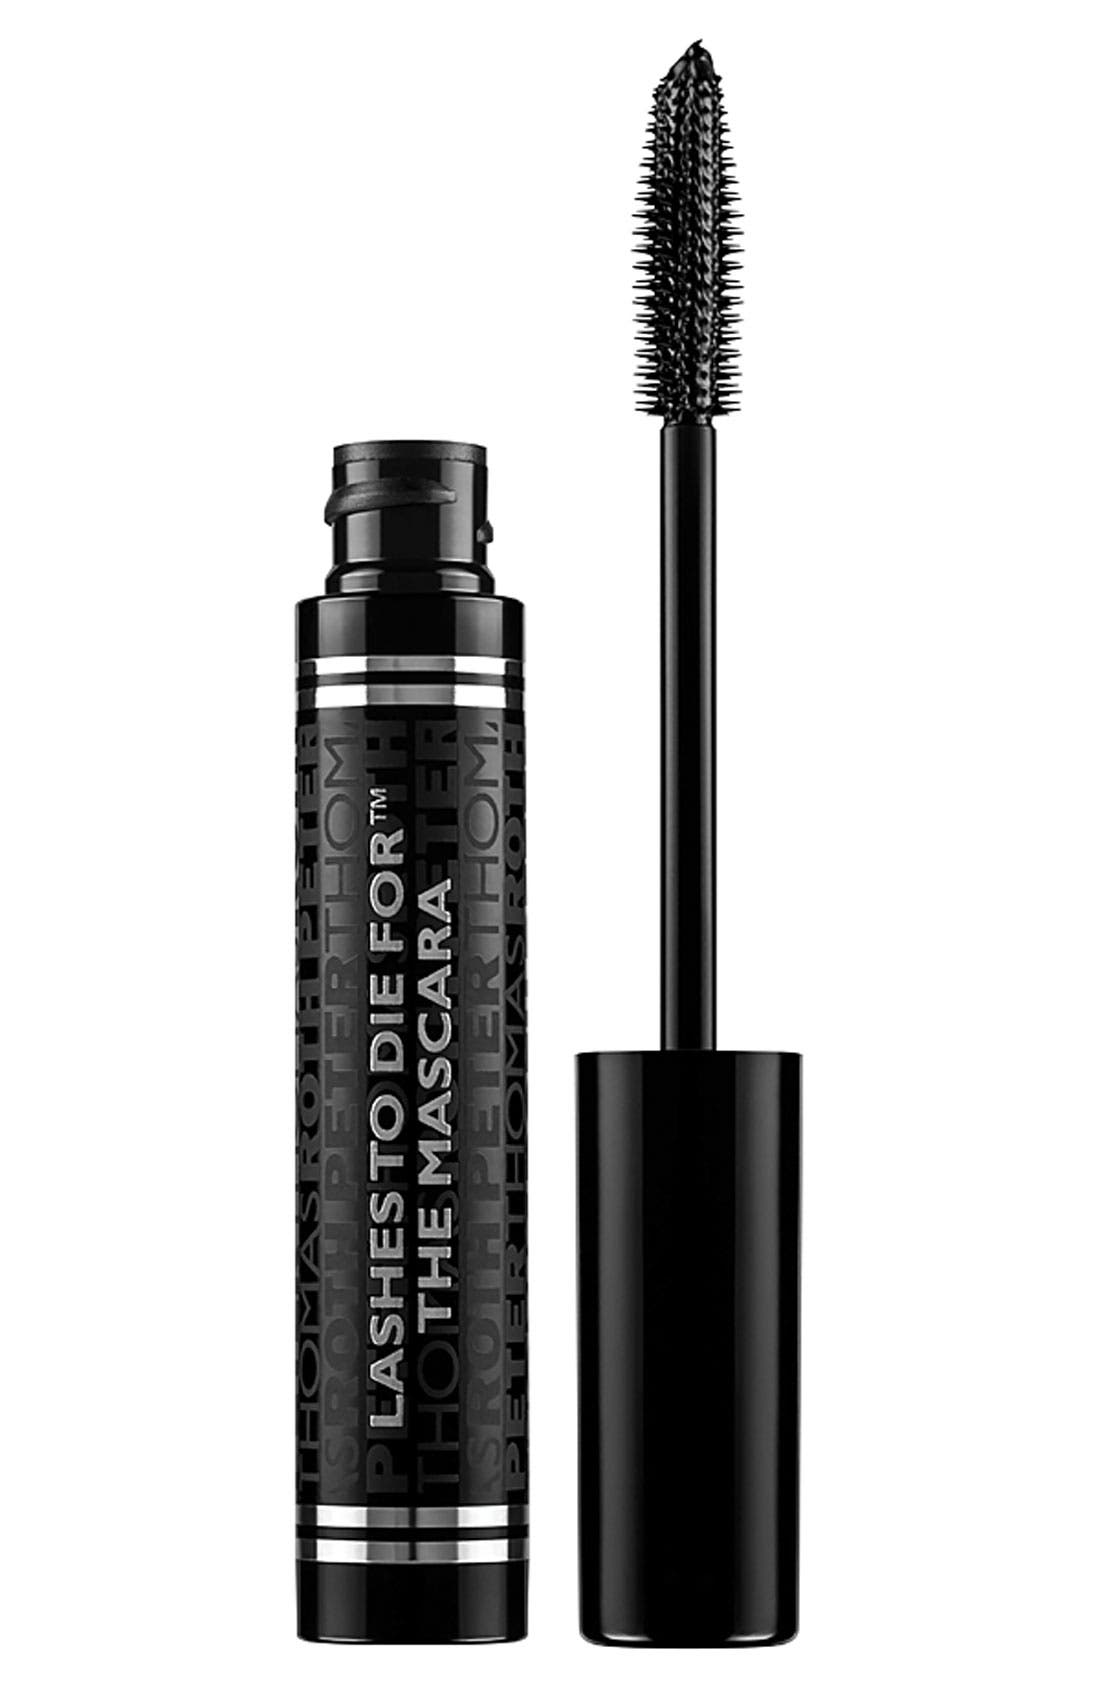 Peter Thomas Roth Lashes to Die For Mascara